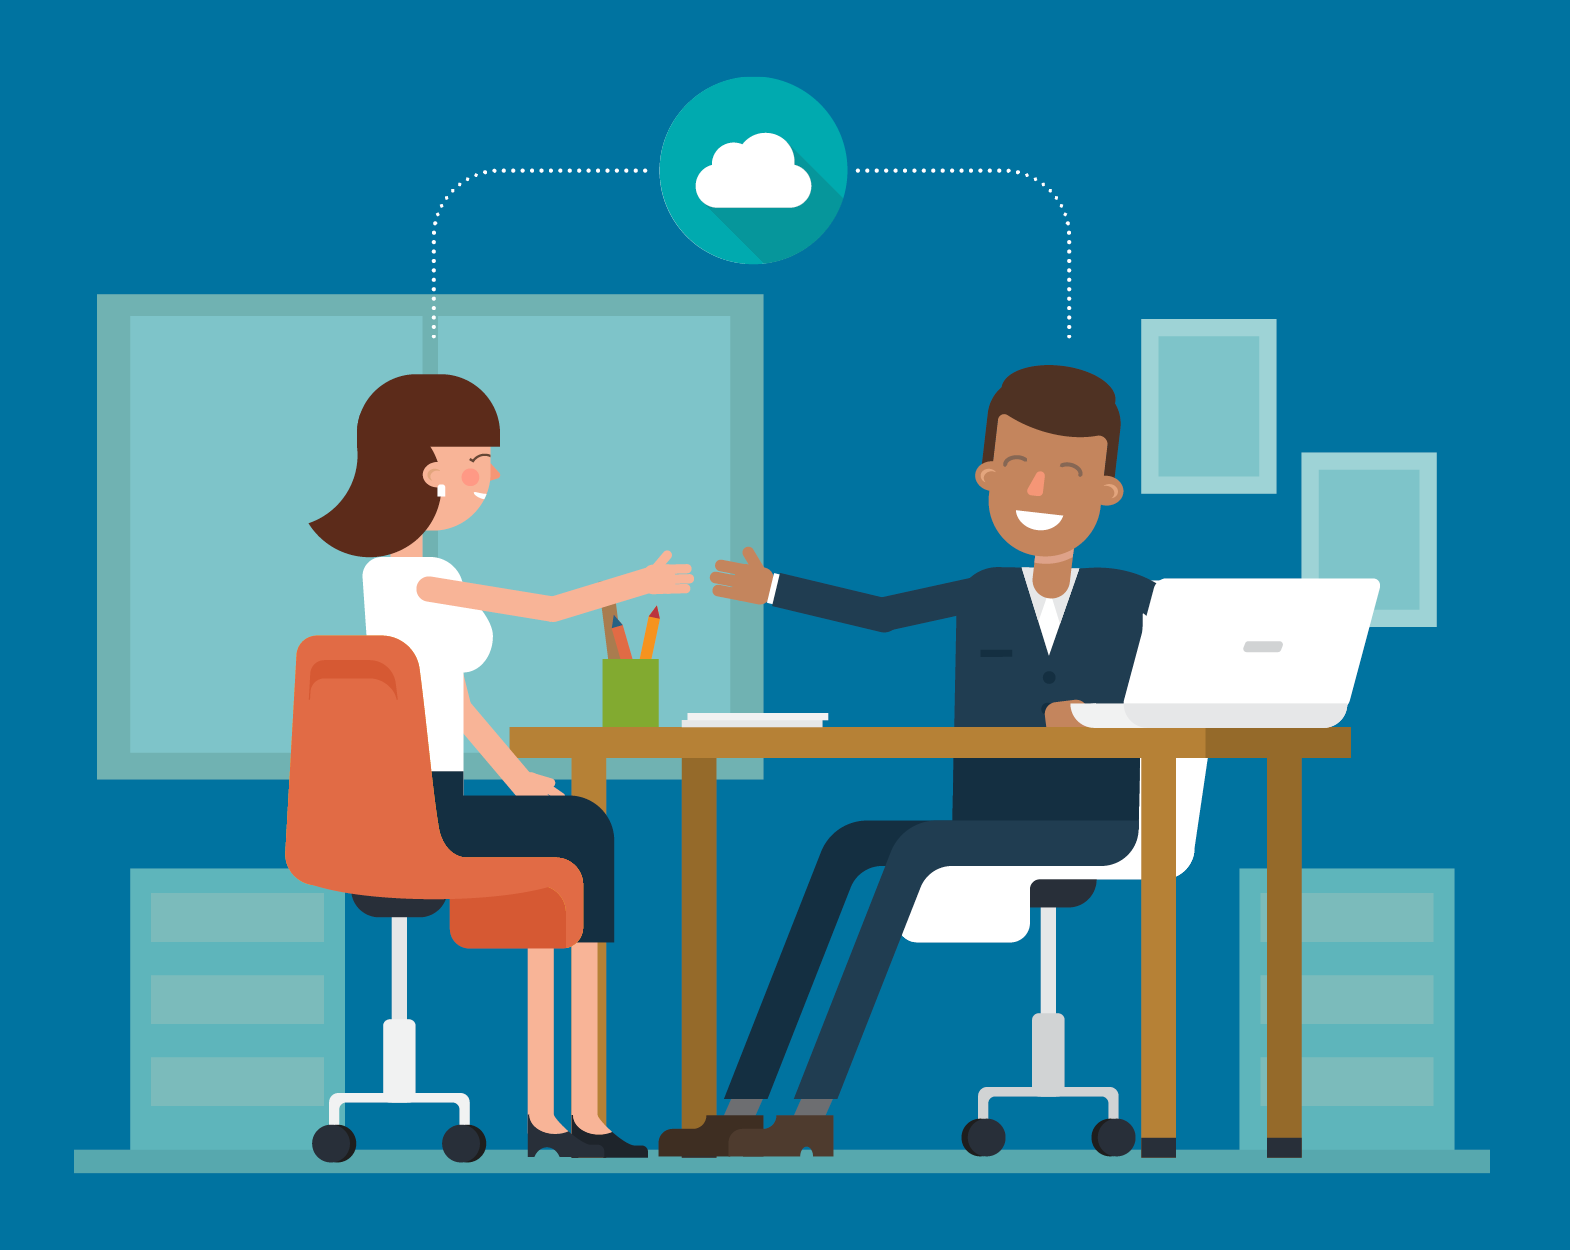 illustration of two coworkers smiling, thinking about the cloud, and reaching out to shake hands